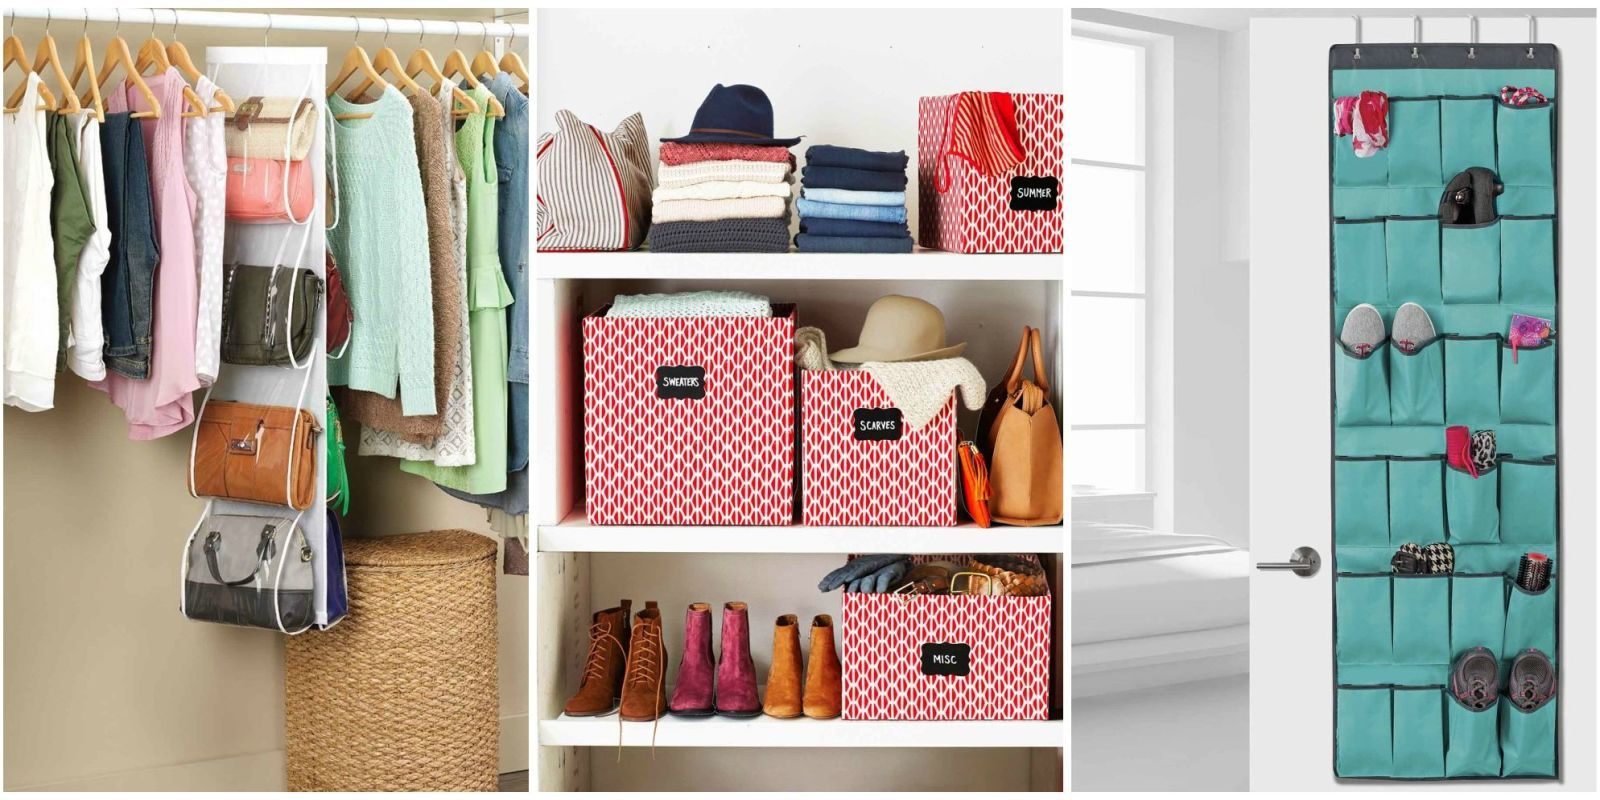 Superieur Closet Organization Tips